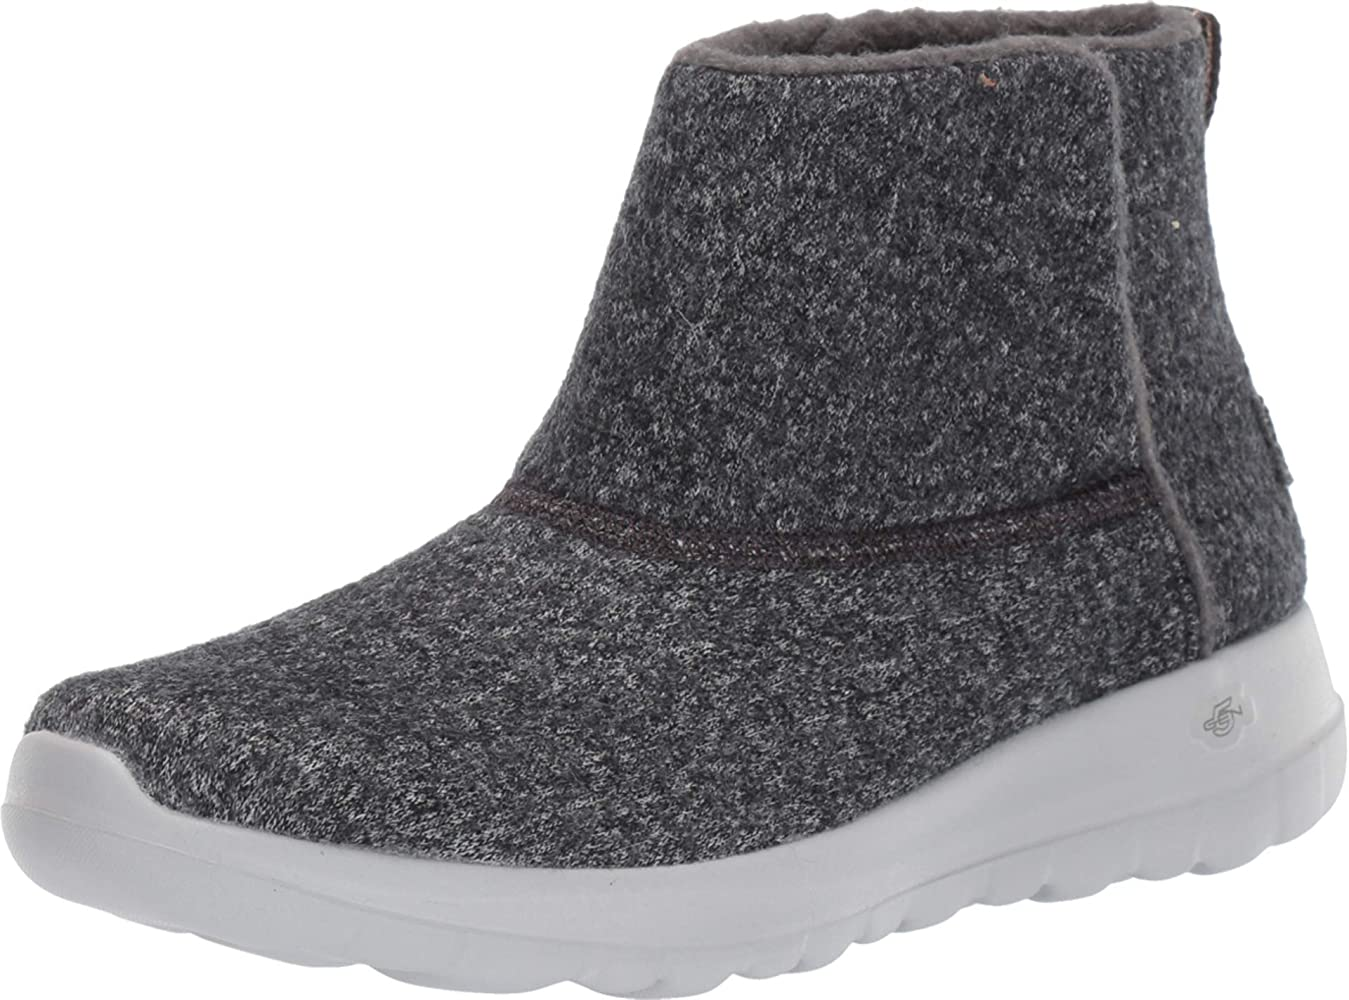 Ankle Boots, Grey Charcoal Wool Ccl